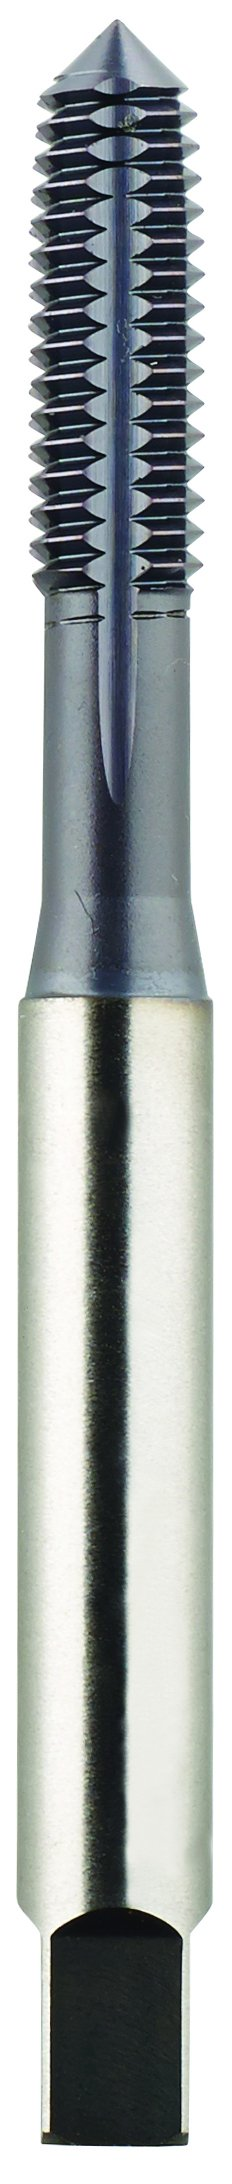 Morse Cutting Tools 61620 Thread Forming High Performance Taps, High-Speed Steel, Plug Style, Titanium Aluminum Nitride Finish, DIN Length, H3 Pitch Diameter Limit, #4-40 Size